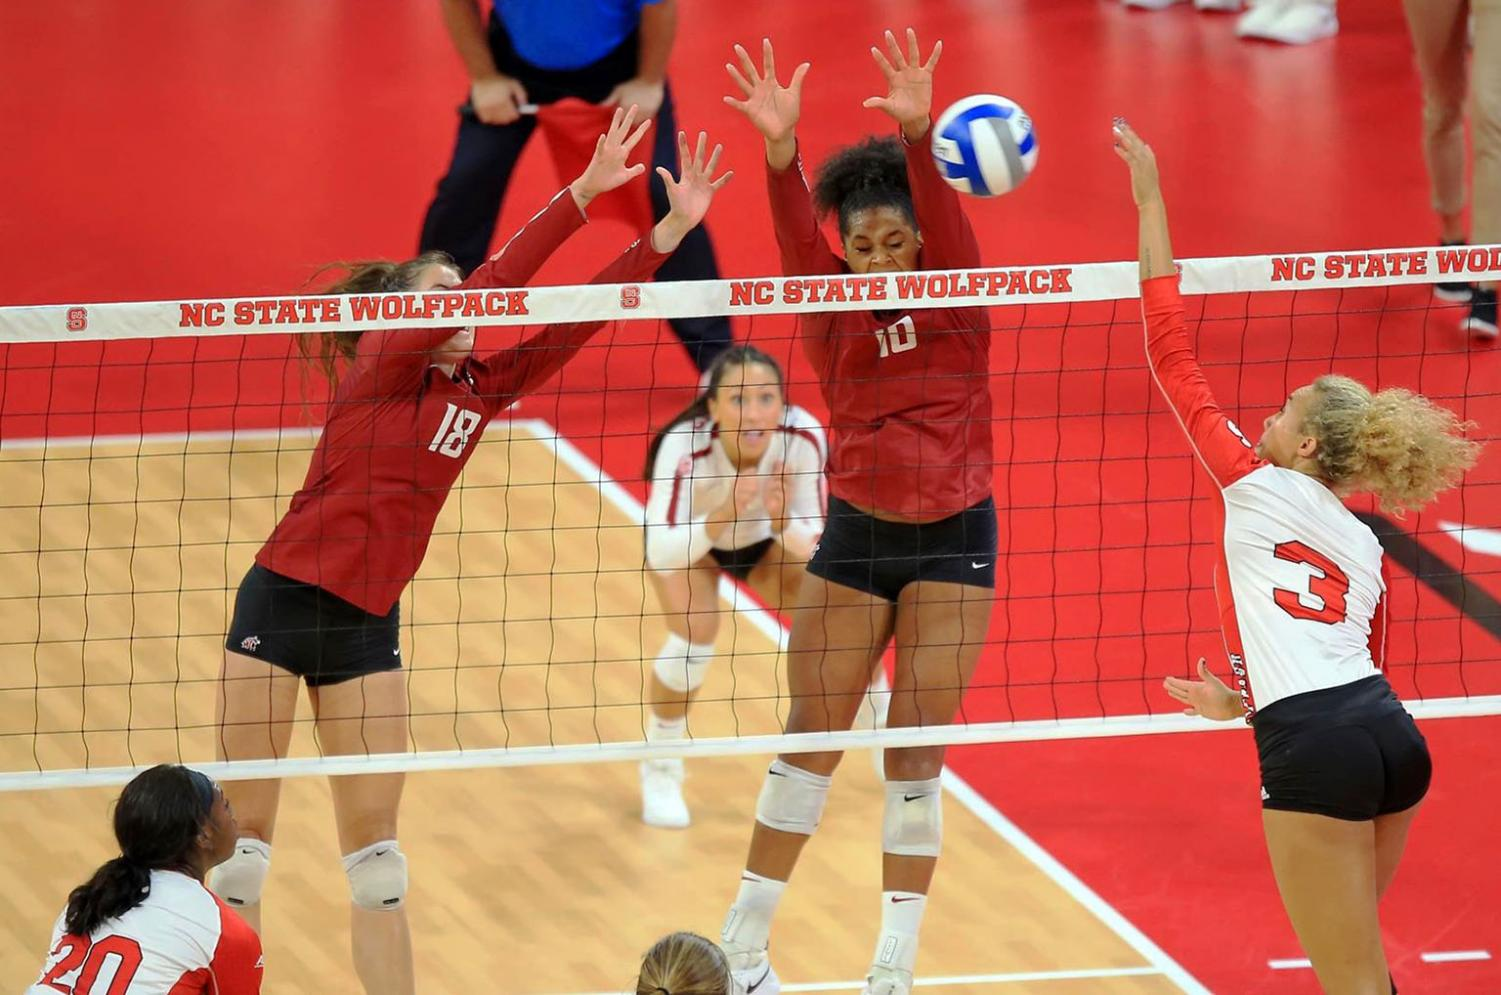 Senior middle blocker Ella Lajos, left, and senior outside hitter Taylor Mims, middle, jump to block a hit made by North Carolina sophomore opposite Melissa Evans on Aug. 26 in Reynolds Coliseum.